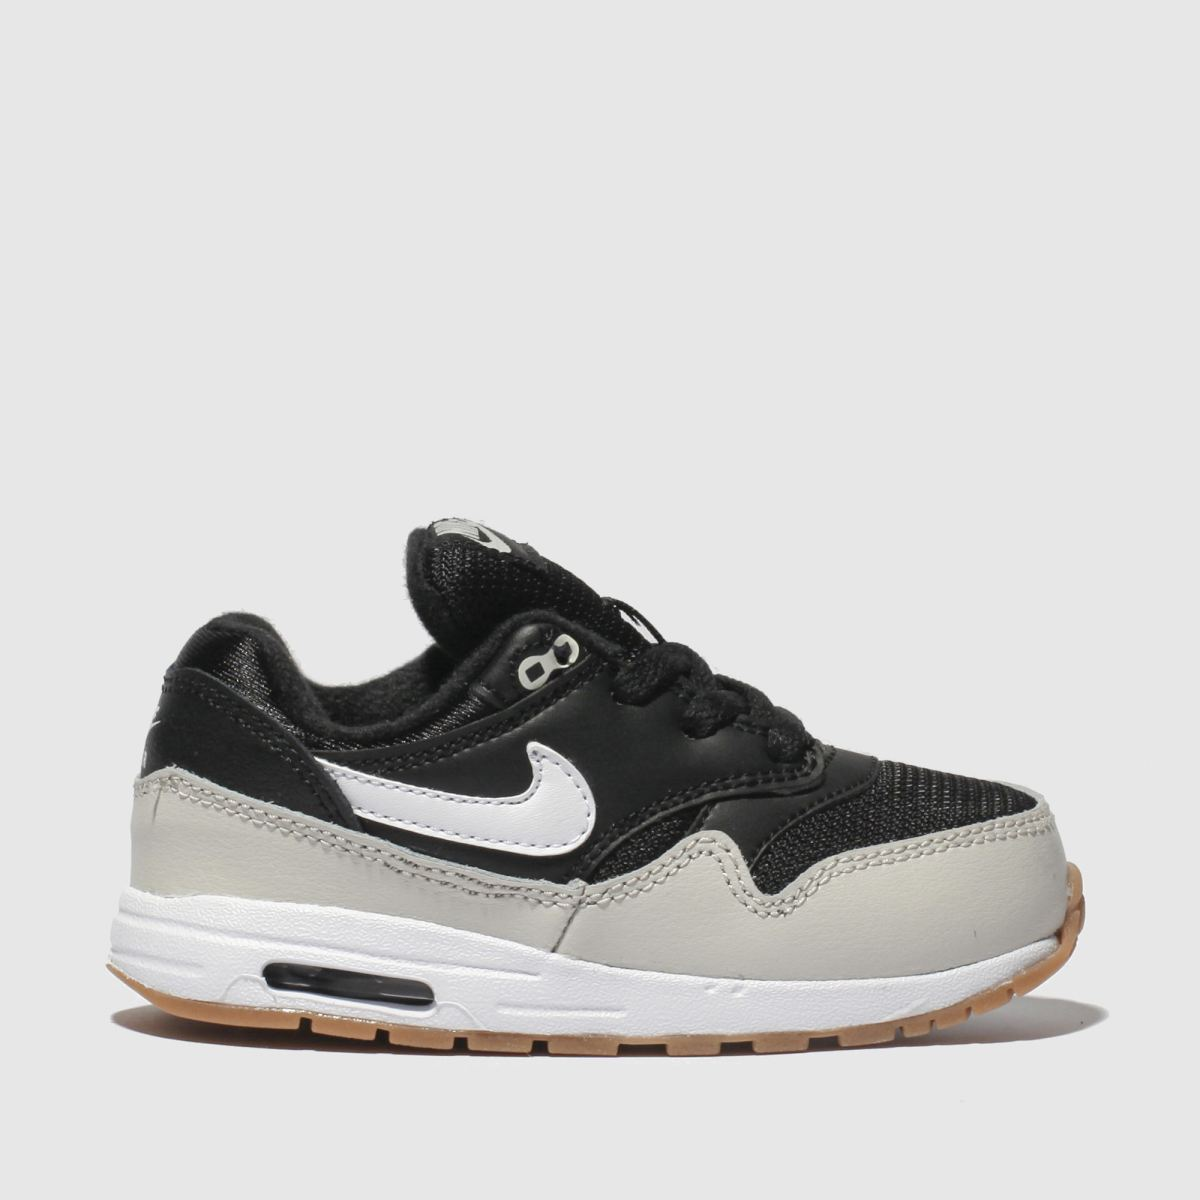 Nike Black & White Air Max 1 Trainers Toddler